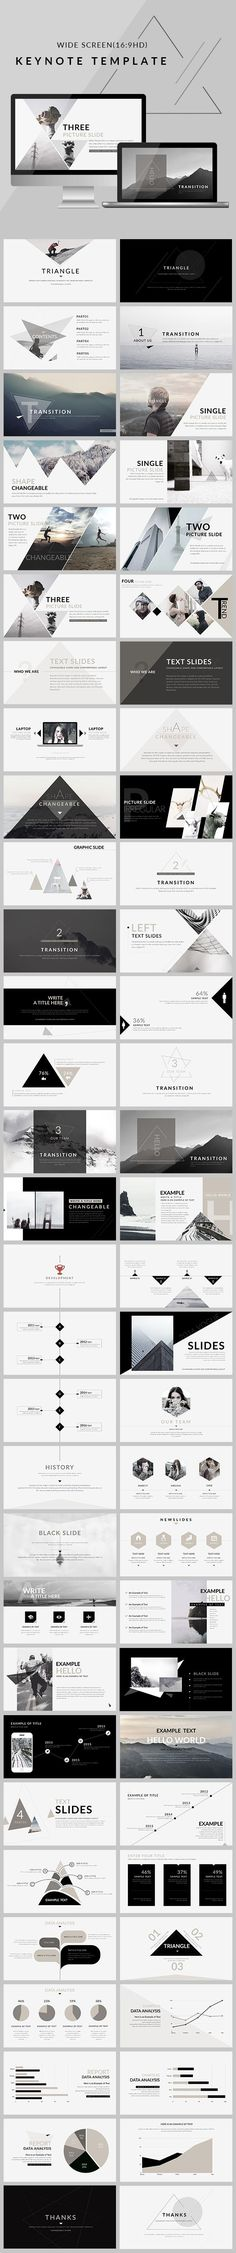 Triangle - Clean trend Keynote Template